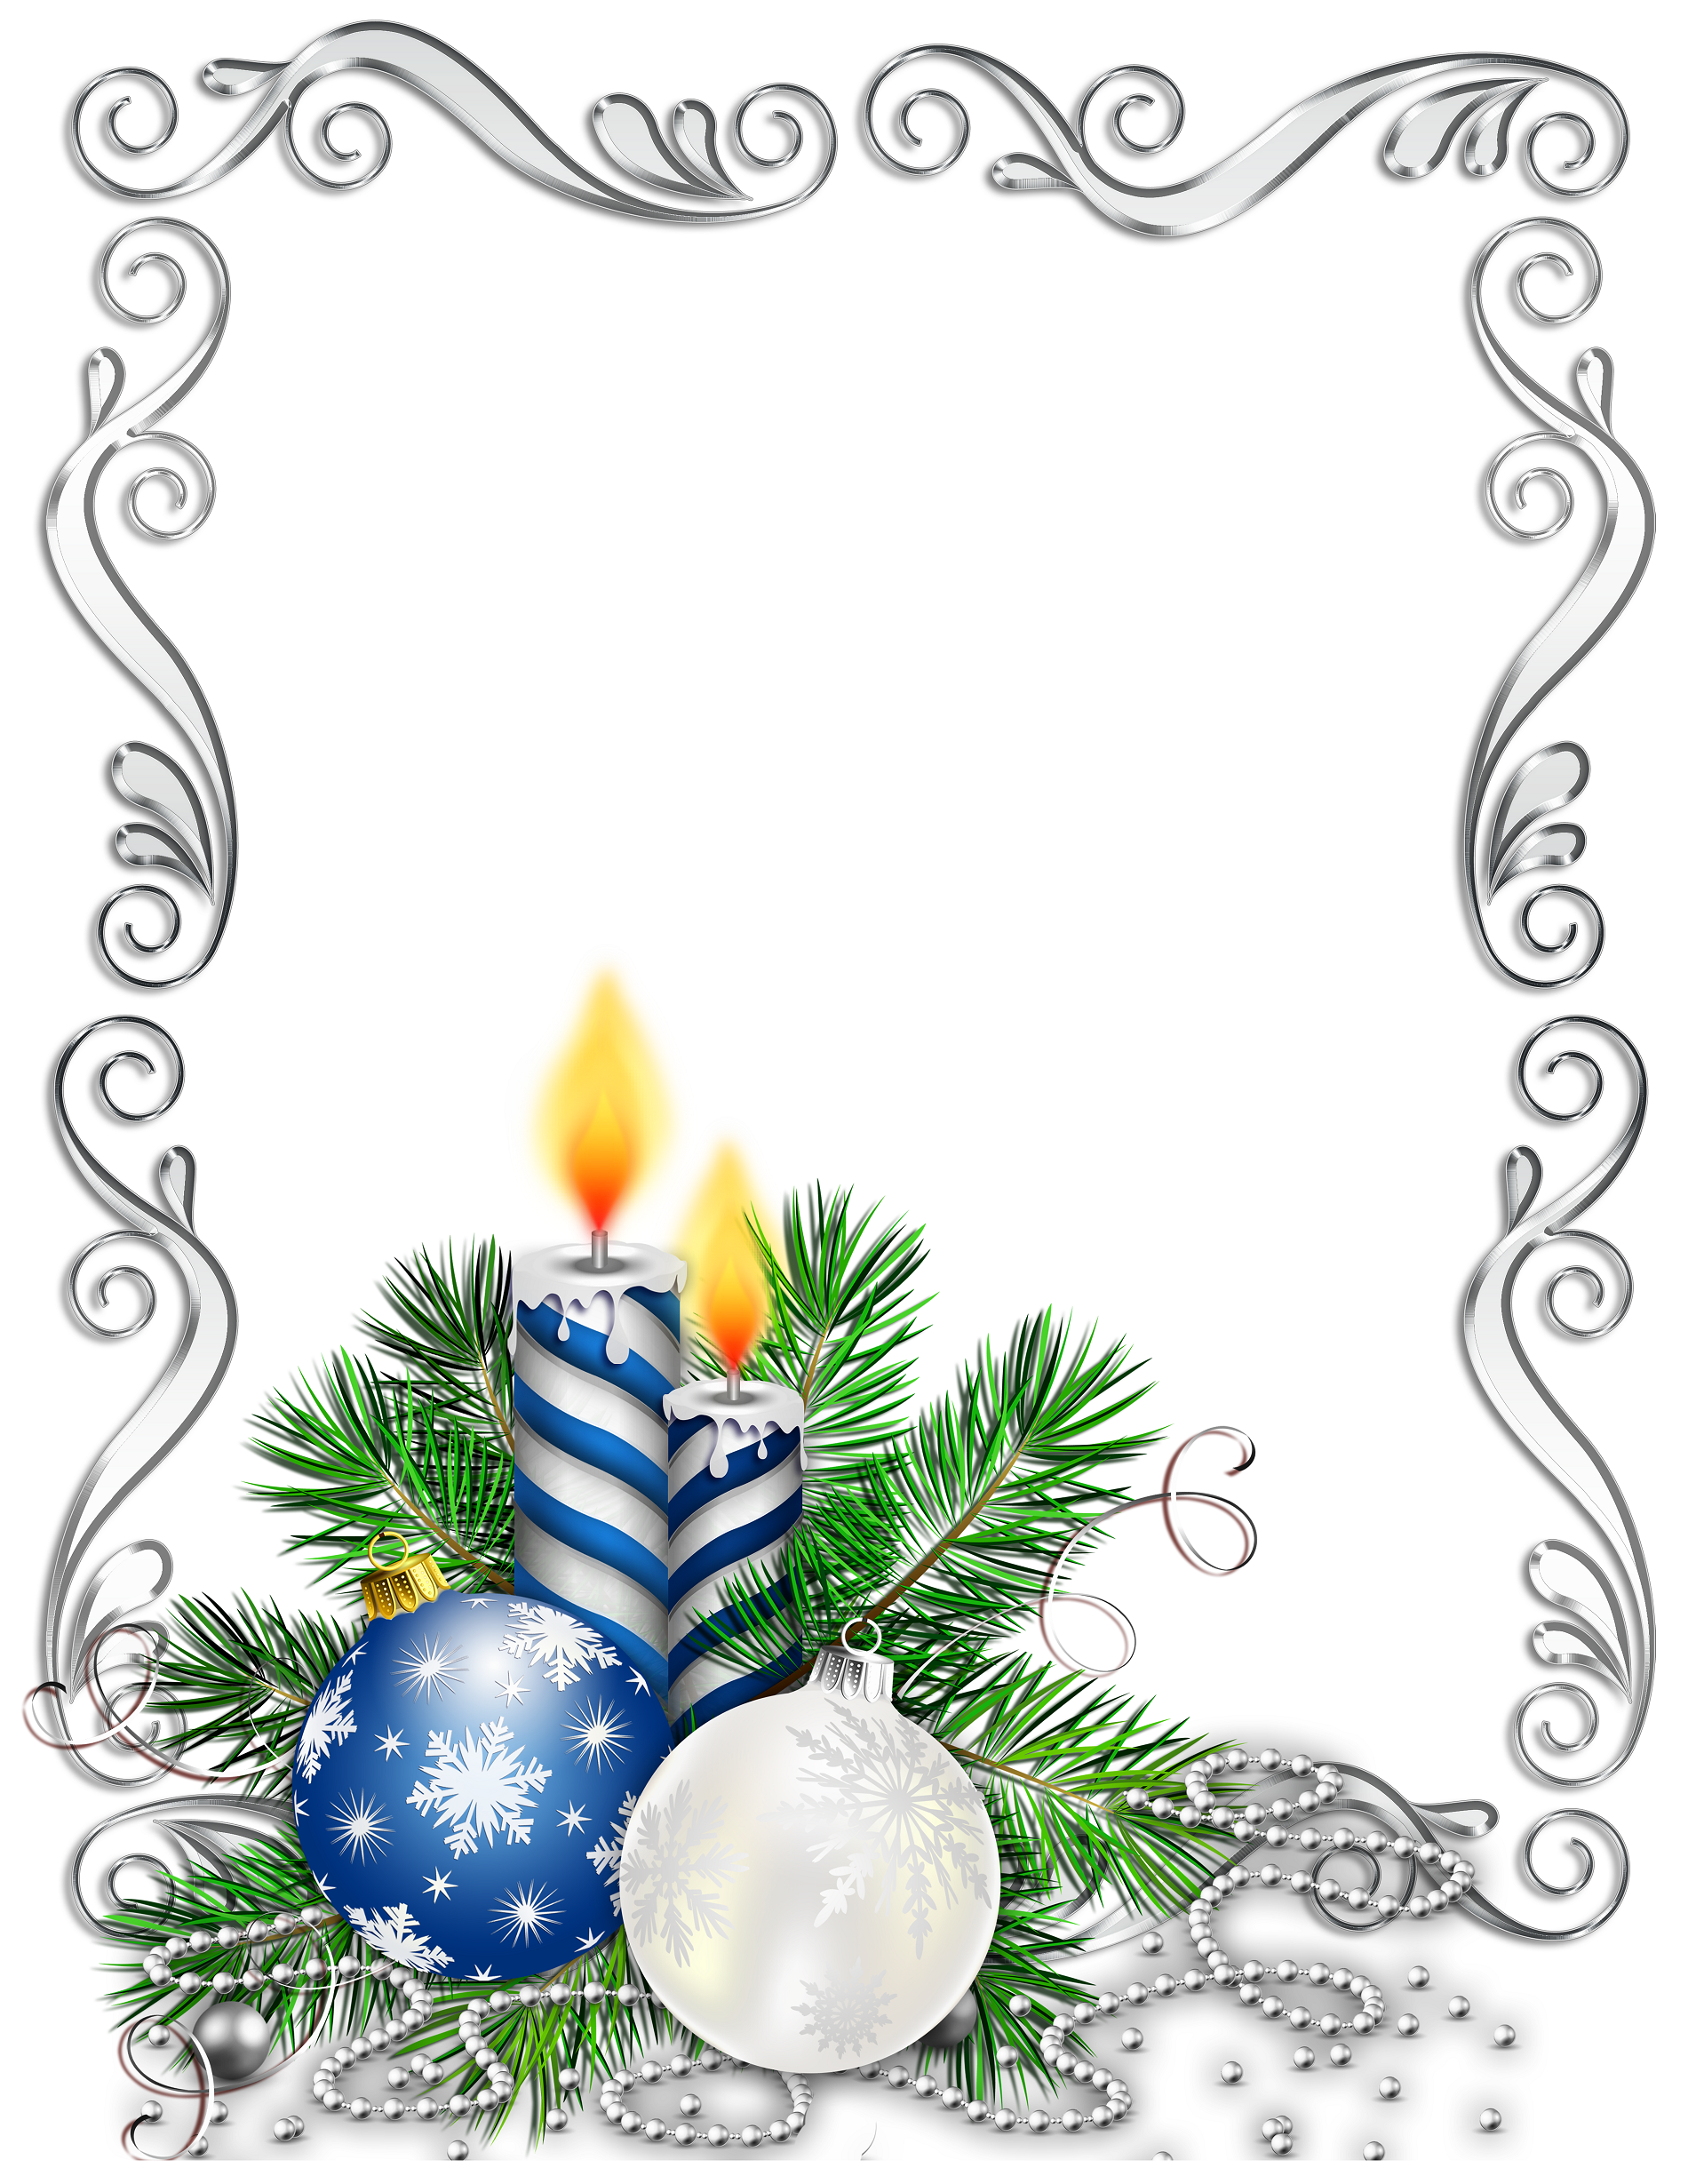 Blue & silver christmas frame clipart jpg royalty free library Christmas frame with bulbs and candles silver and blue | Ramki ... jpg royalty free library